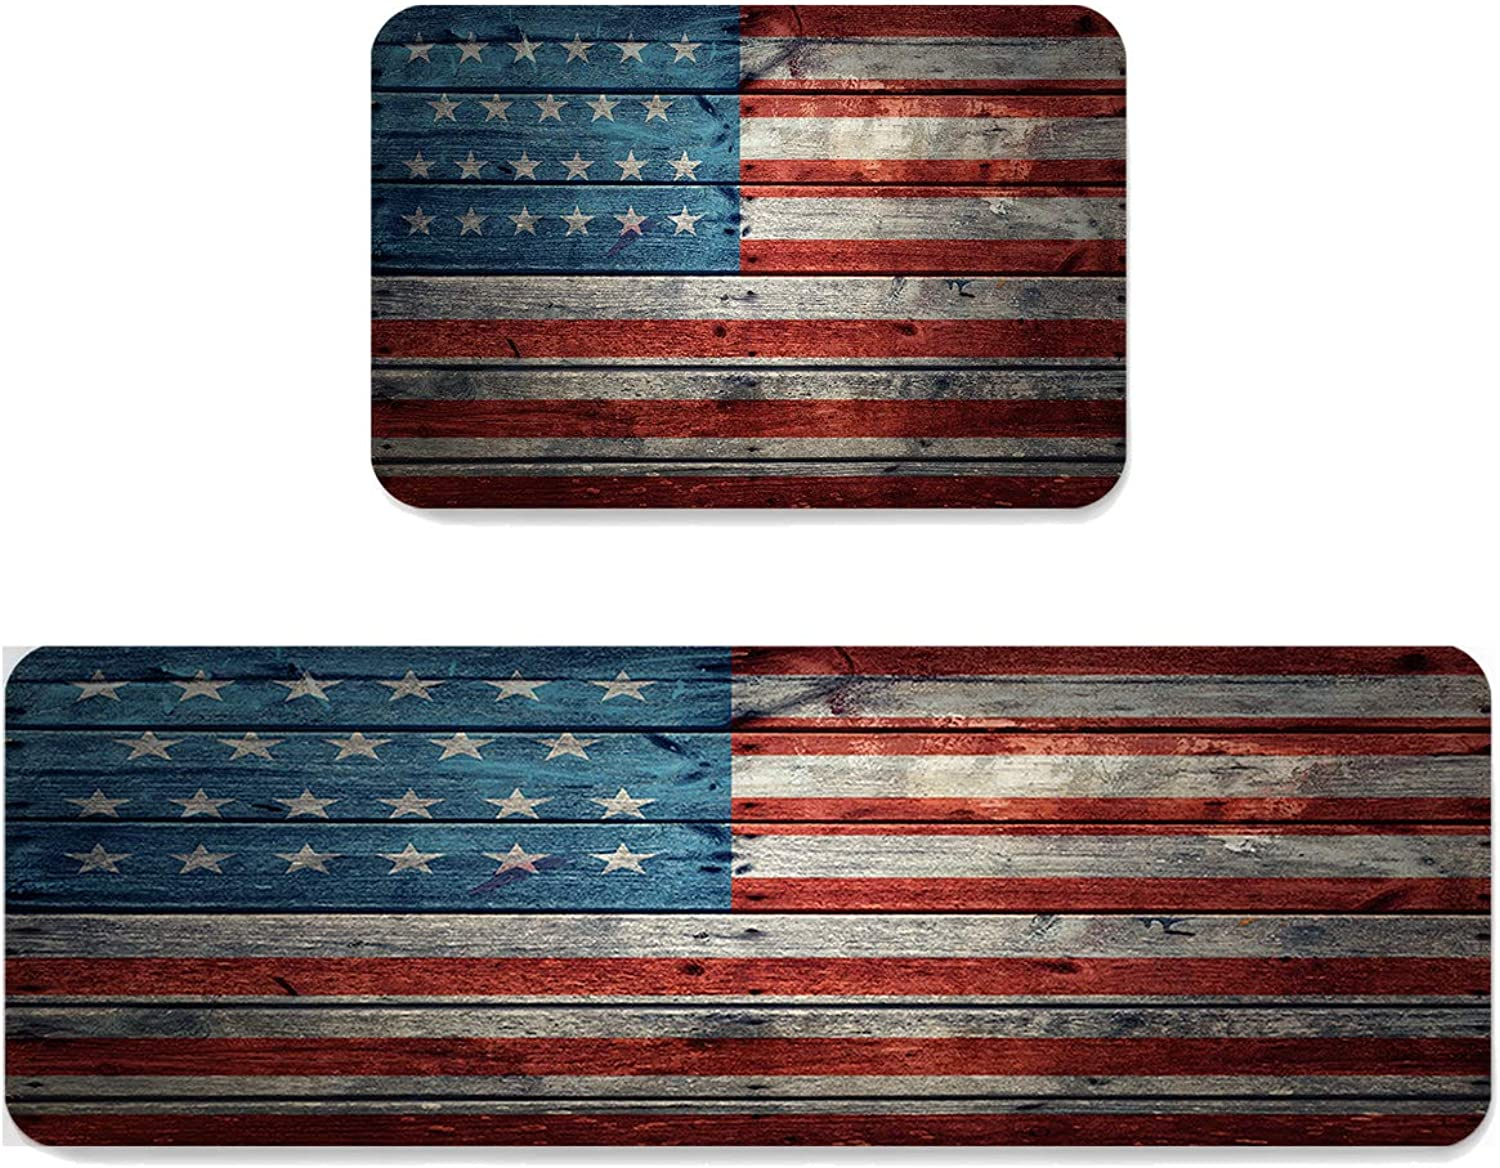 2 Piece Kitchen Rug Sets Floor Mats Non-Slip Rubber Backing Area Rugs Vintage Wooden Board American Flag Print Doormat Washable Carpet Inside Door Mat Pad Sets (23.6  x 35.4 +23.6  x 70.9 )